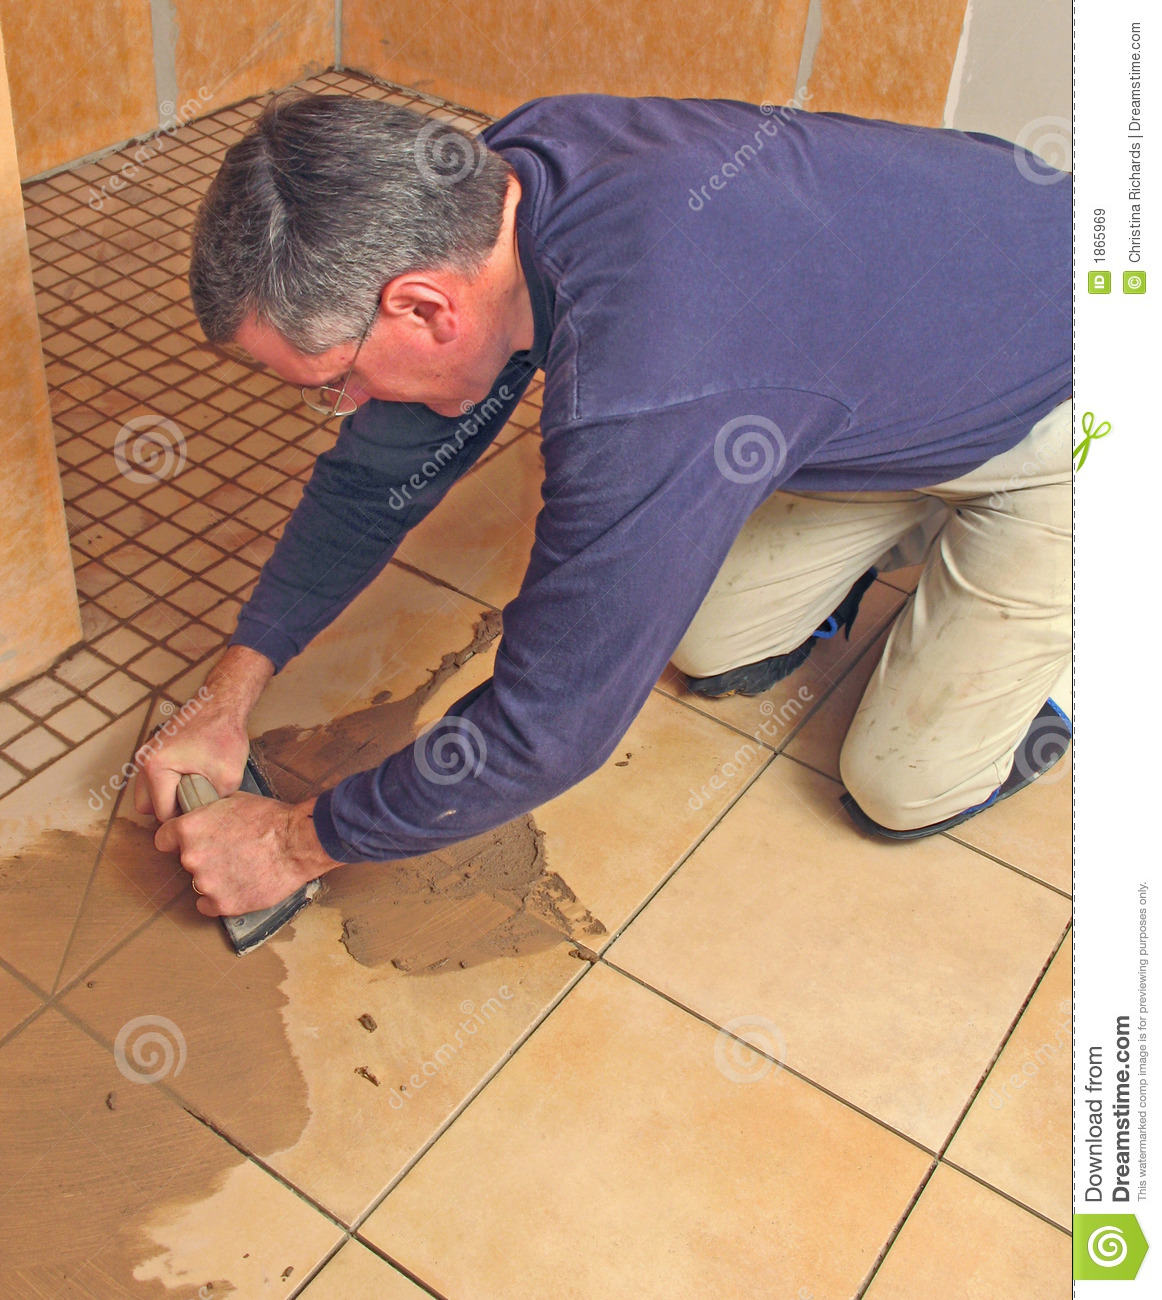 Grouting Ceramic Floor Tiles Image Collections Tile